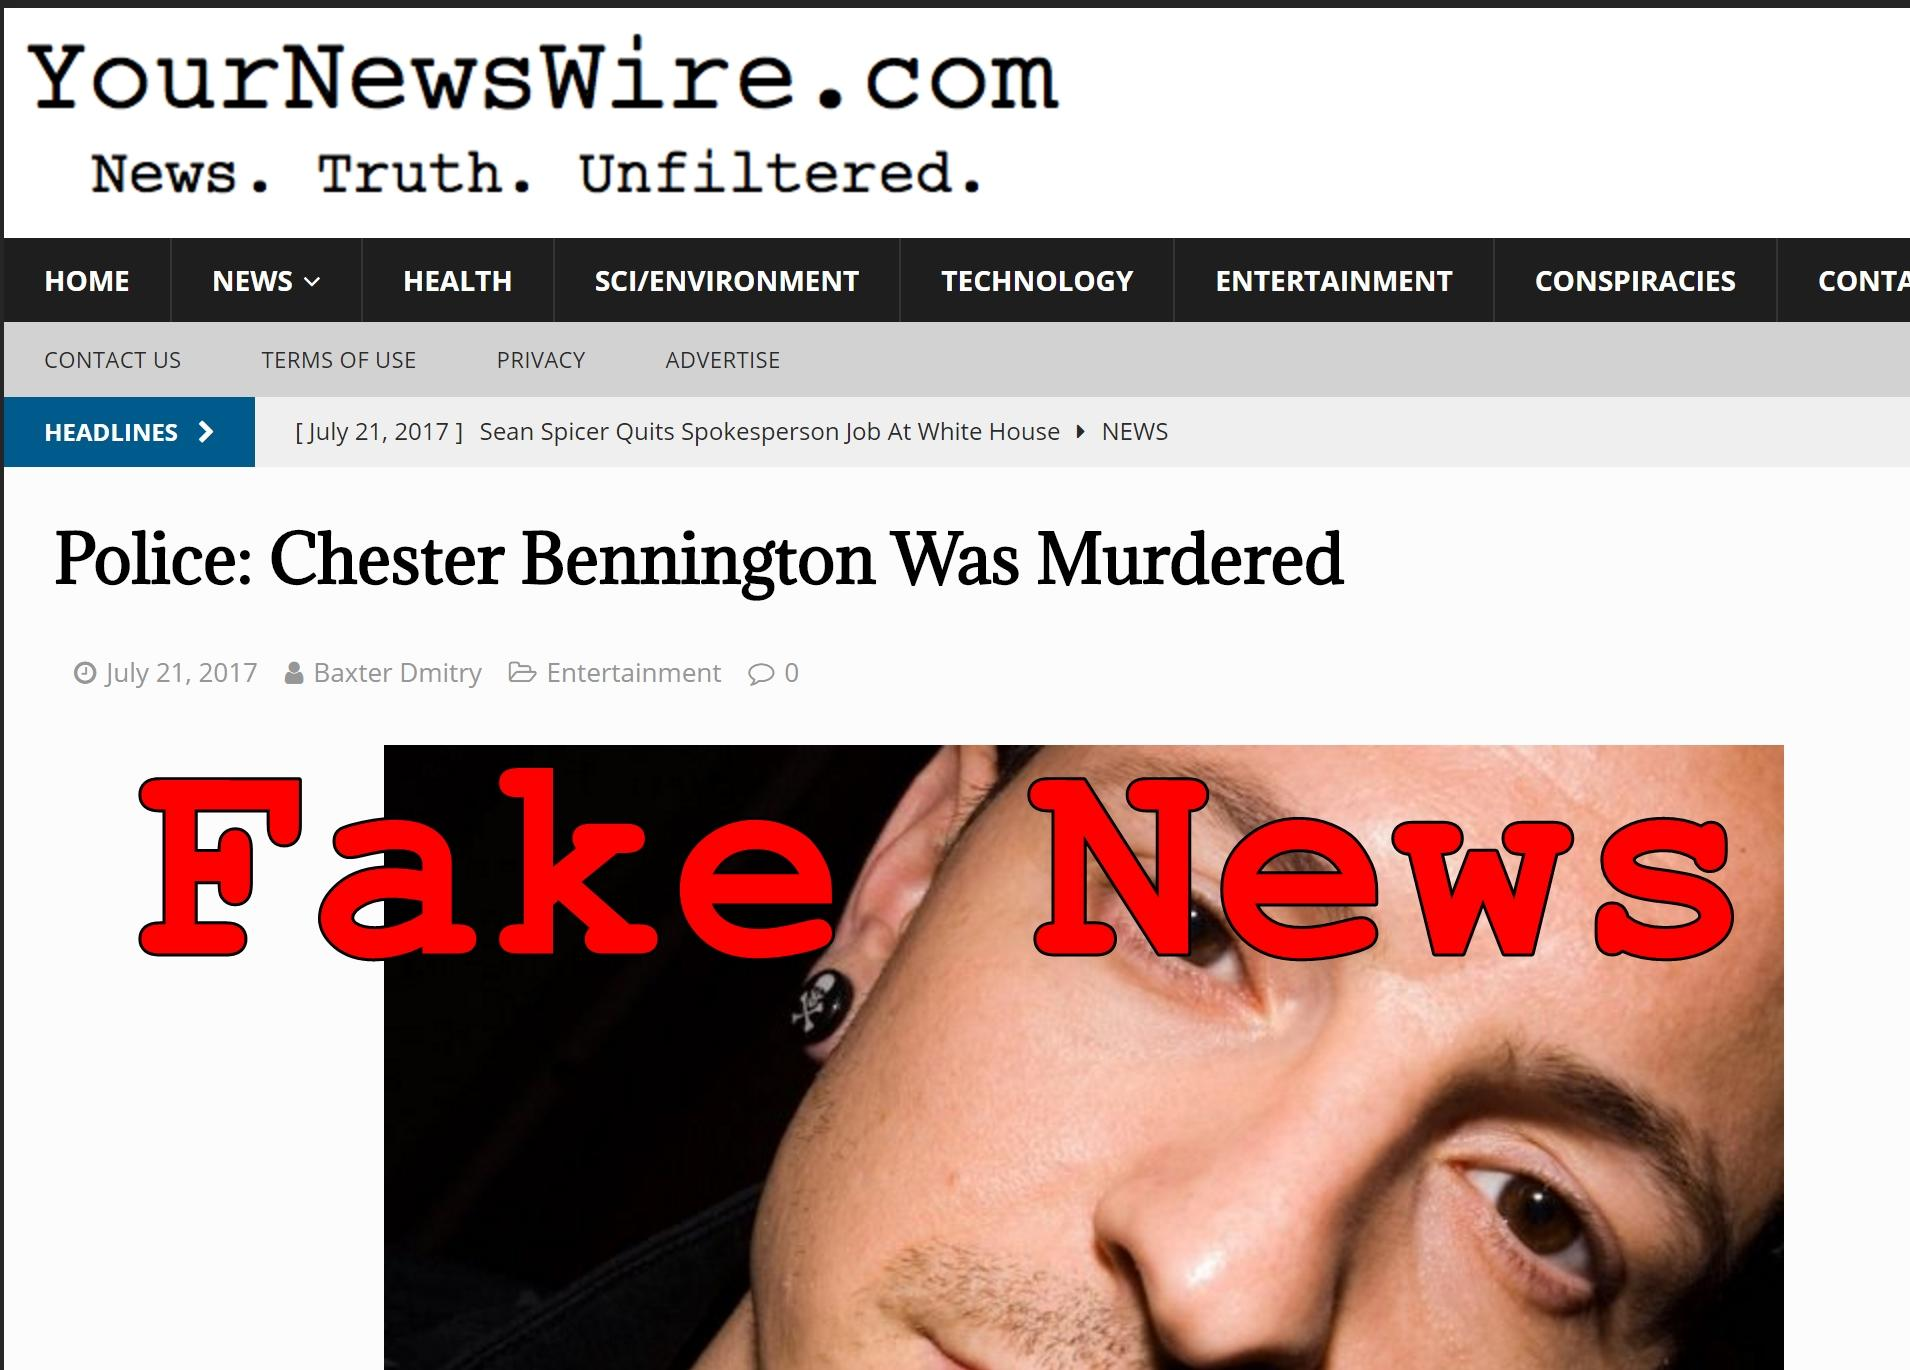 Fake News: Police Did NOT Say Chester Bennington Was Murdered